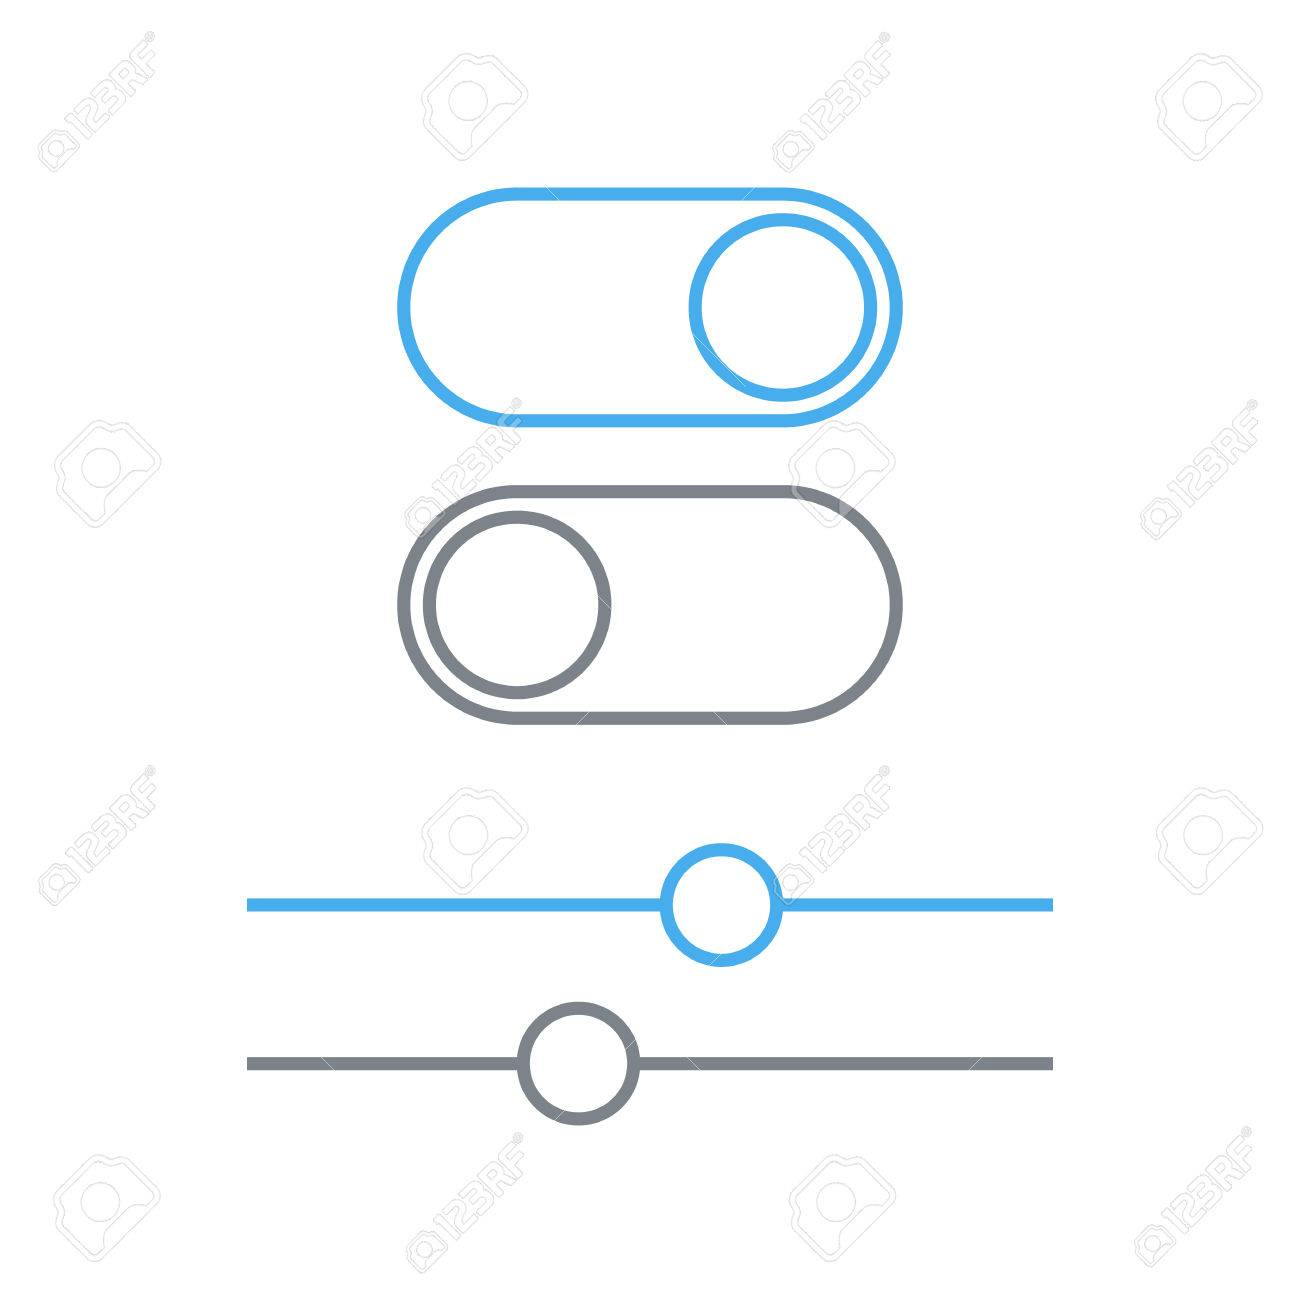 Great toggle switch symbol photos wiring diagram ideas toggle switches and sliders outline icon on and off position biocorpaavc